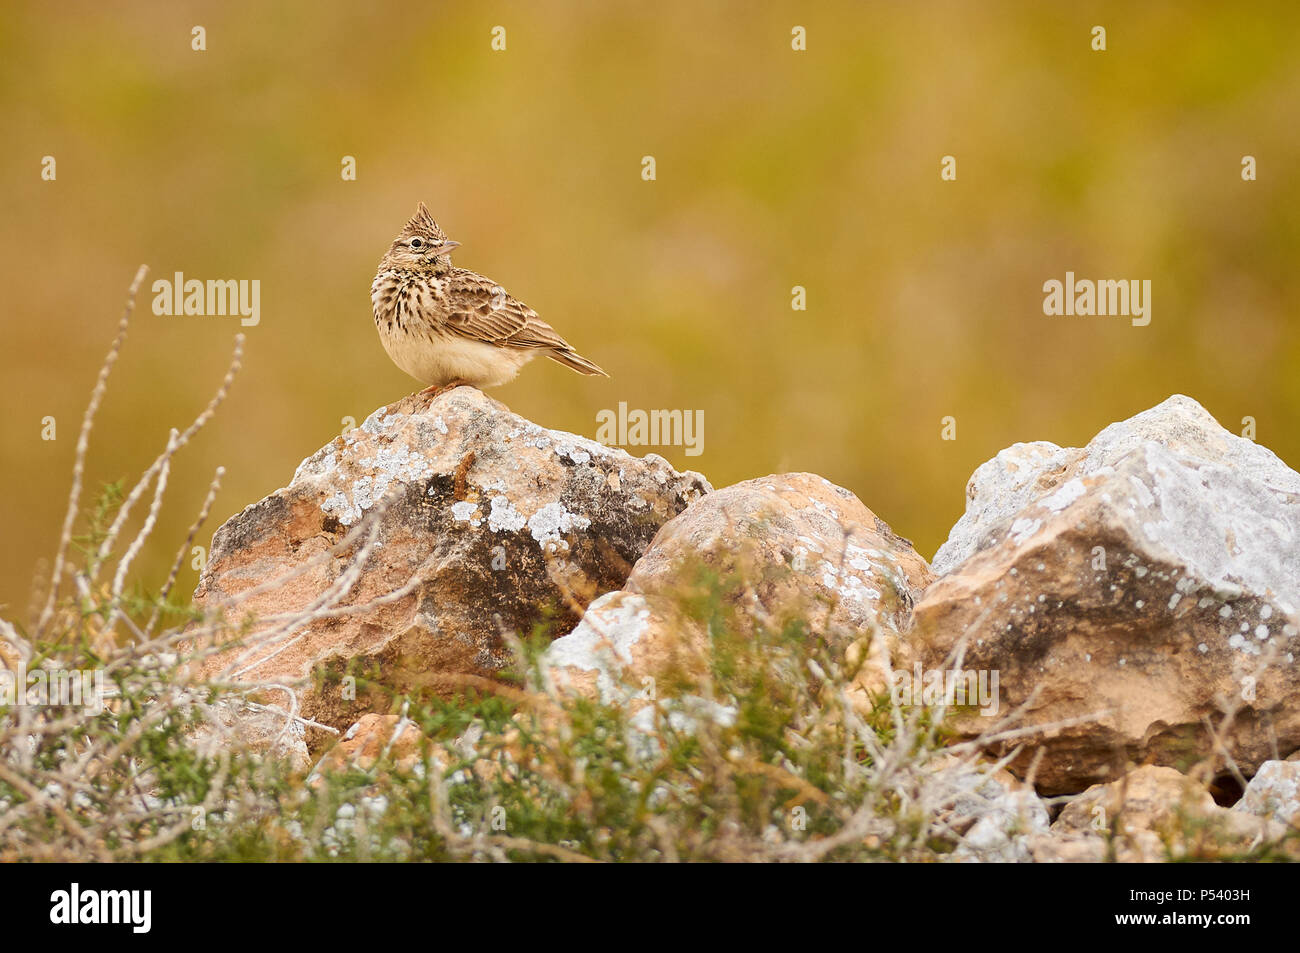 Iberian Thekla's lark (Galerida theklae theklae) over a stone wall in Can Marroig in Ses Salines Natural Park (Formentera, Balearic islands, Spain) - Stock Image